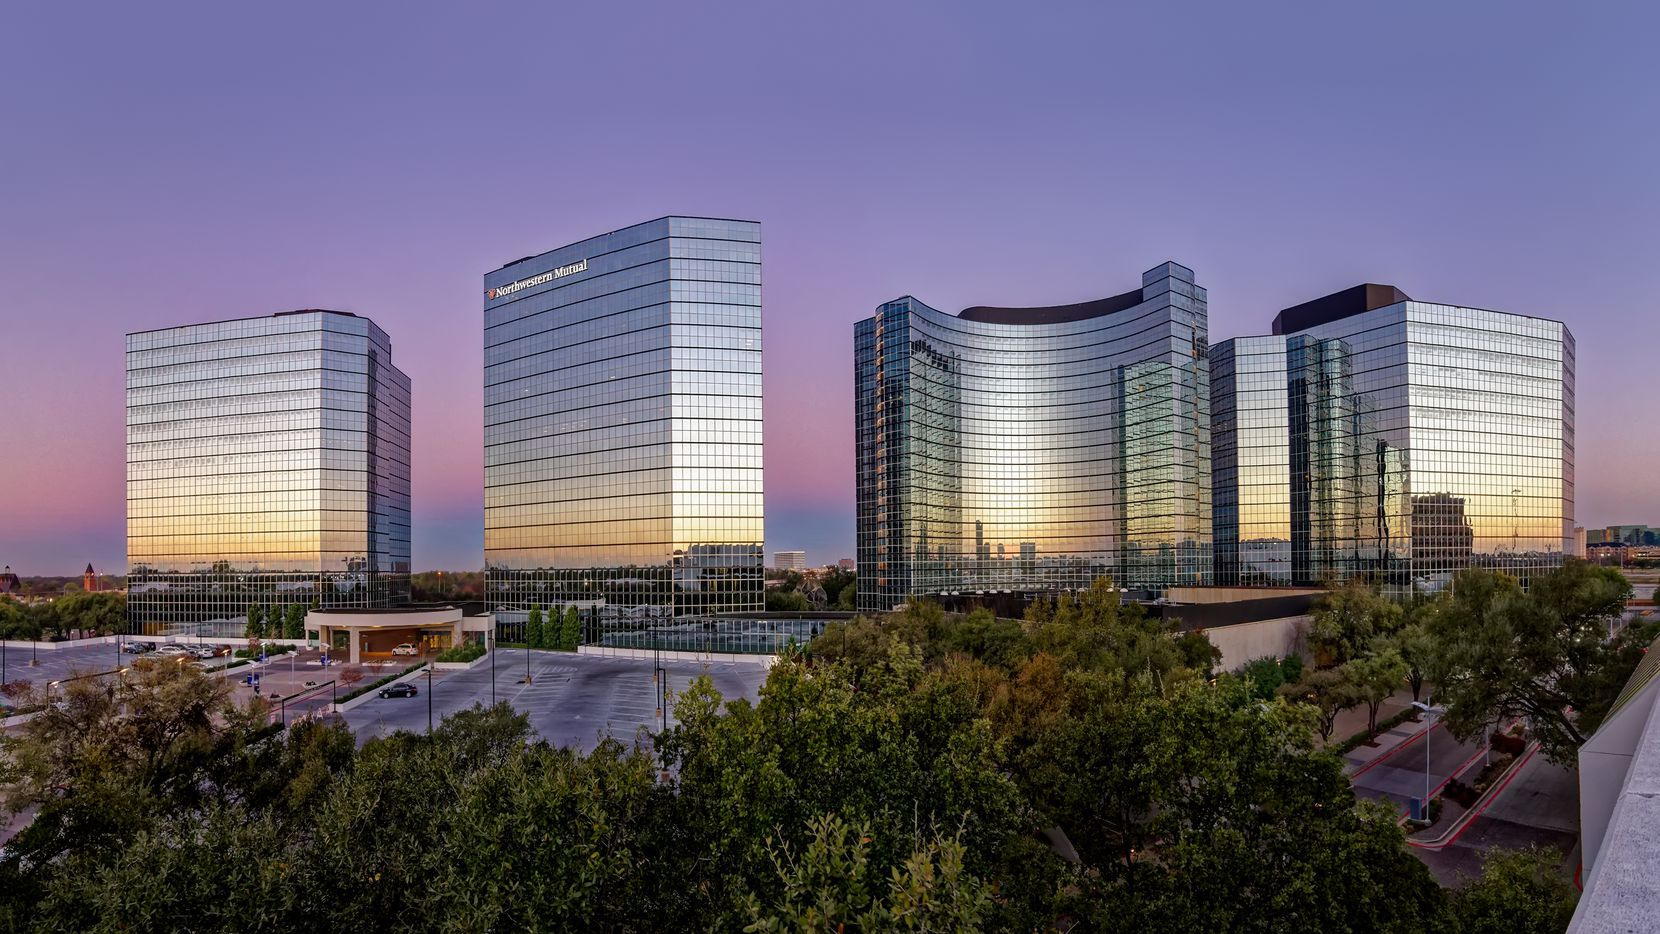 Coca-Cola Southwest is moving to the four-tower Lincoln Centre complex at the Dallas North Tollway and LBJ Freeway.